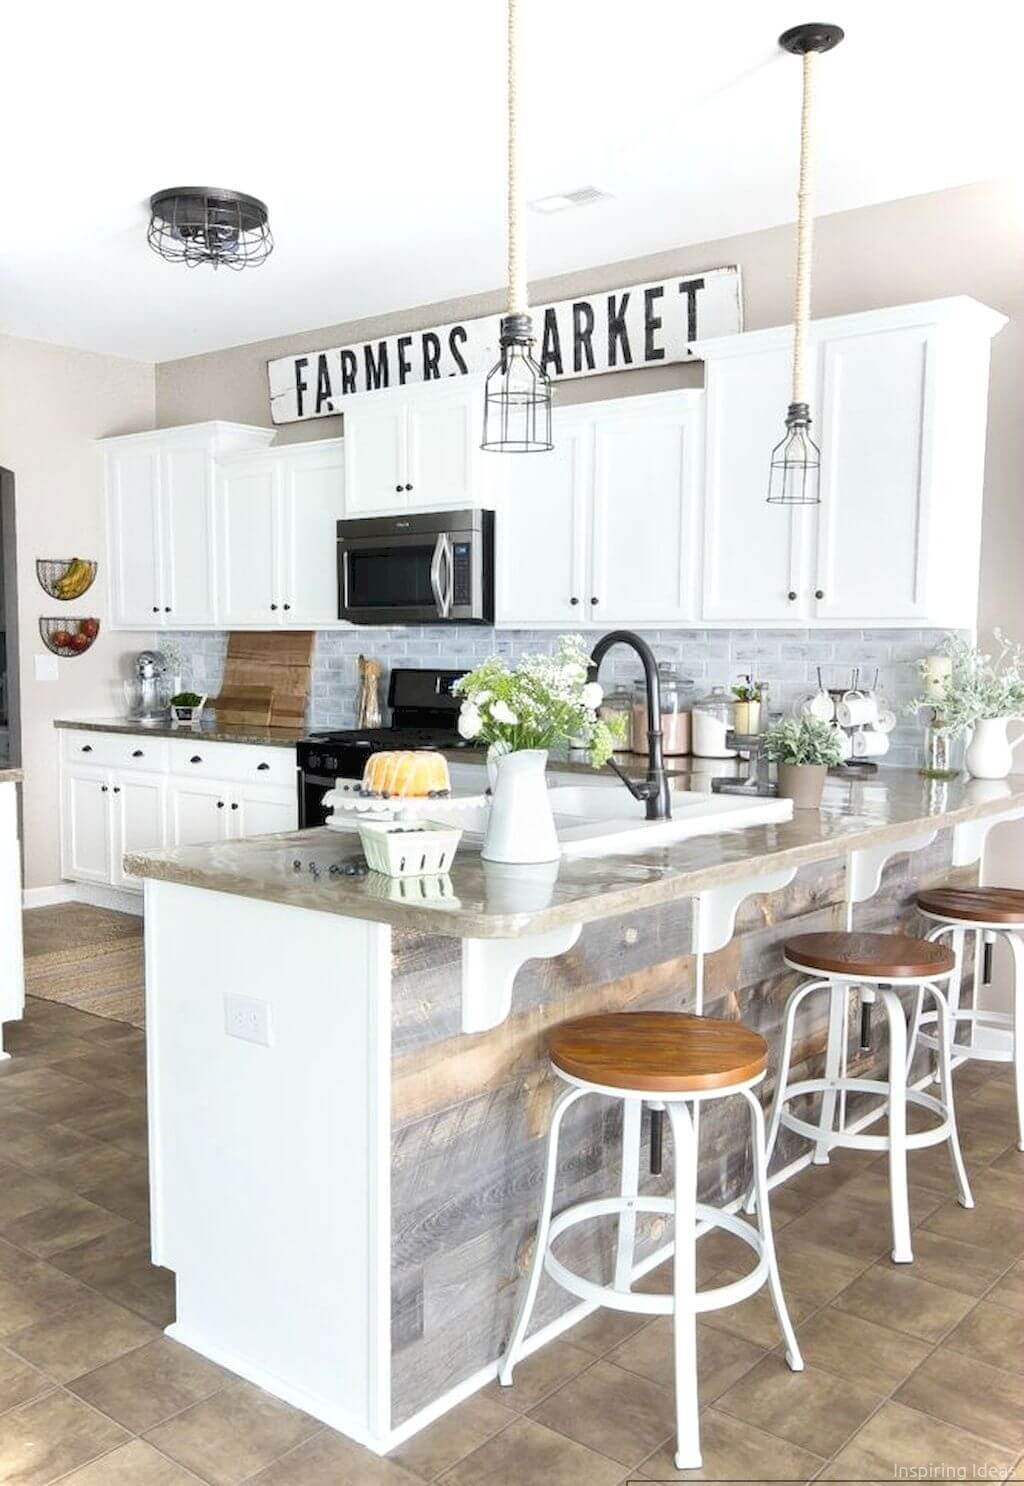 35 Best Farmhouse Kitchen Cabinet Ideas and Designs for 2020 on Farmhouse Kitchen Ideas  id=93236